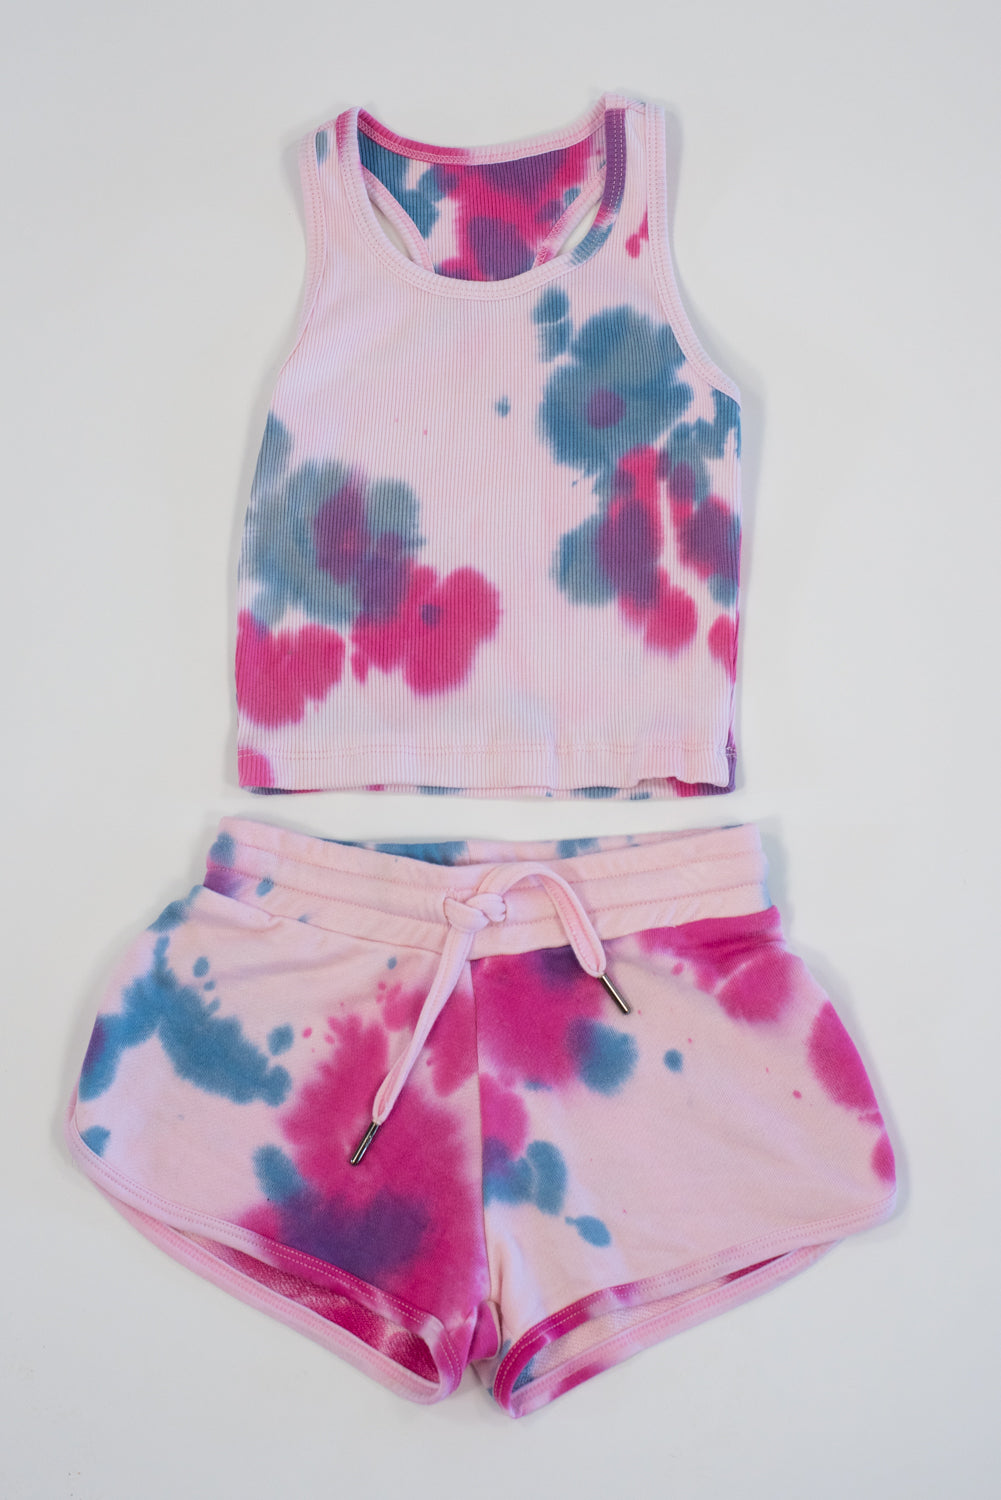 *Blush Tiedye Shorts*